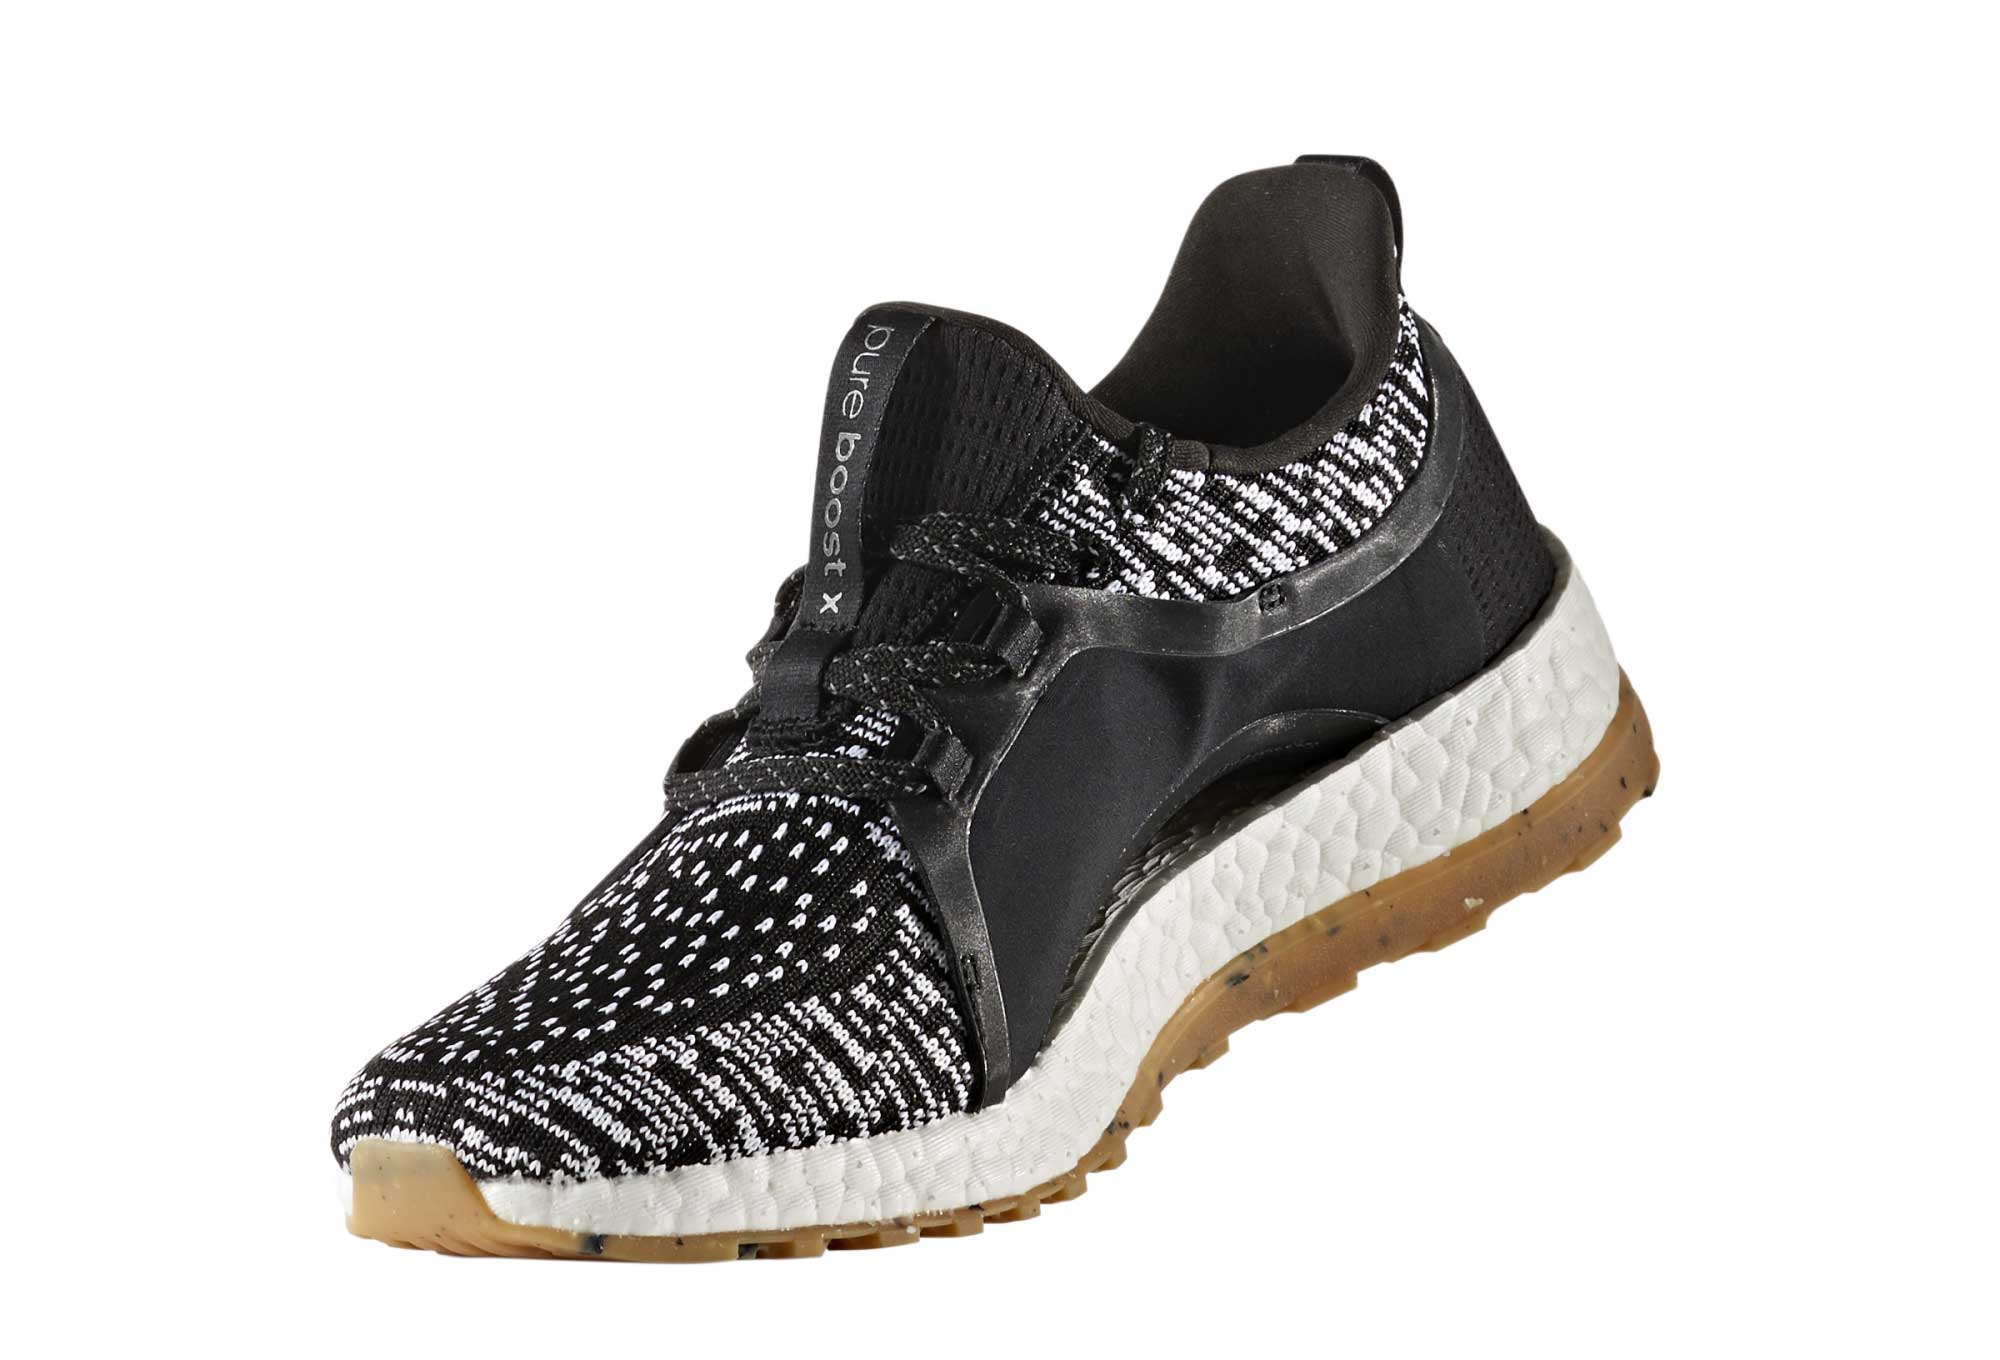 a5d5bf324 adidas running Pureboost X All Terrain Black White Women